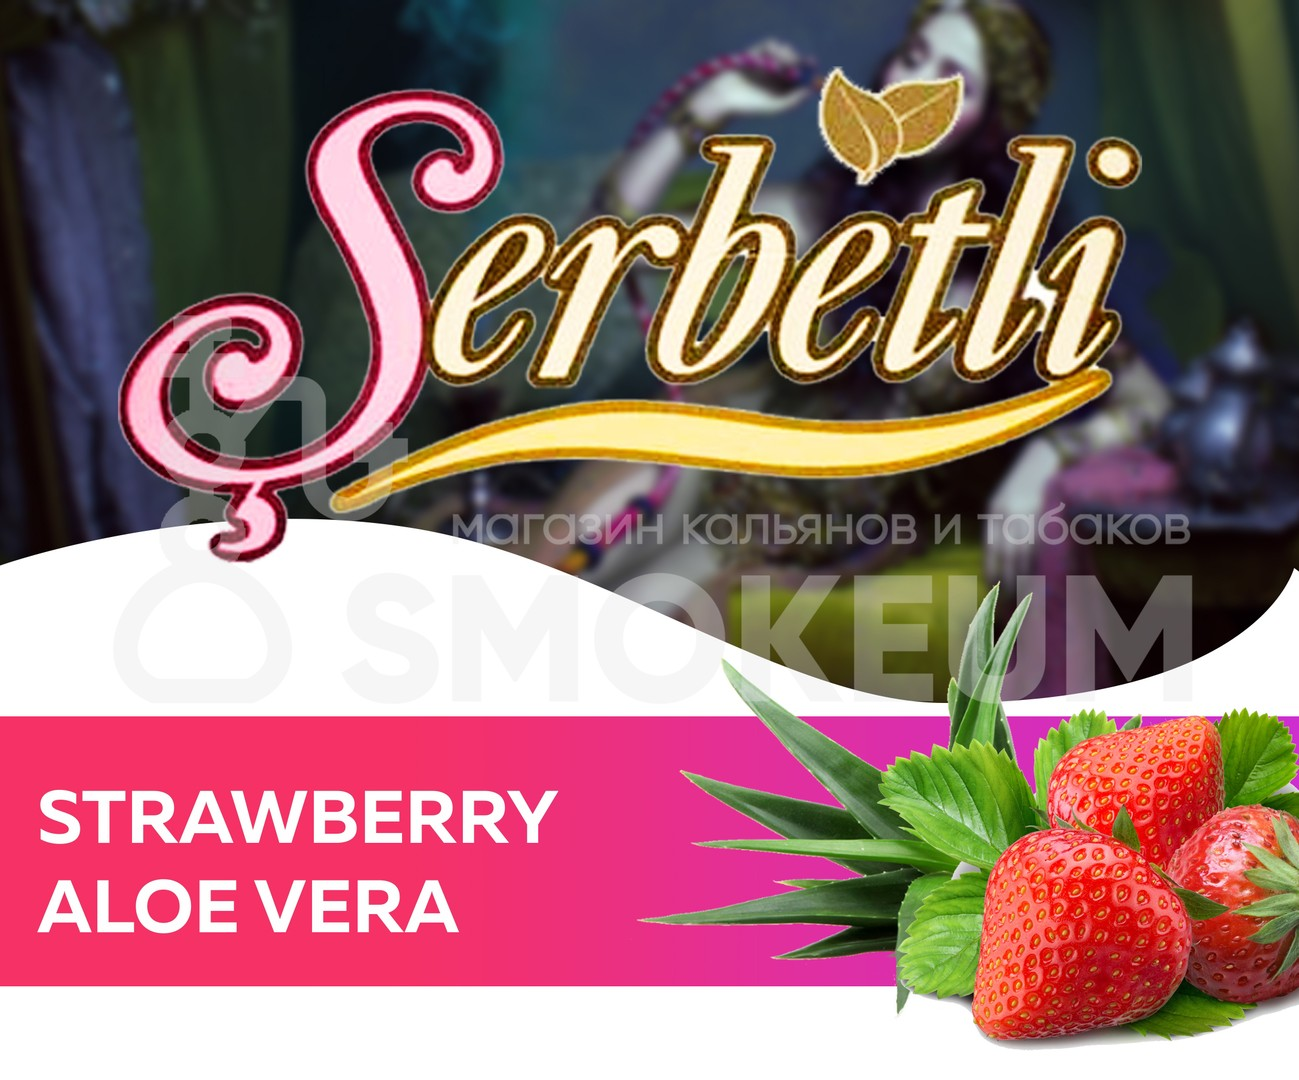 Табак Serbetli - Strawberry Aloe Vera (Клубника с алоэ вера) 50 гр